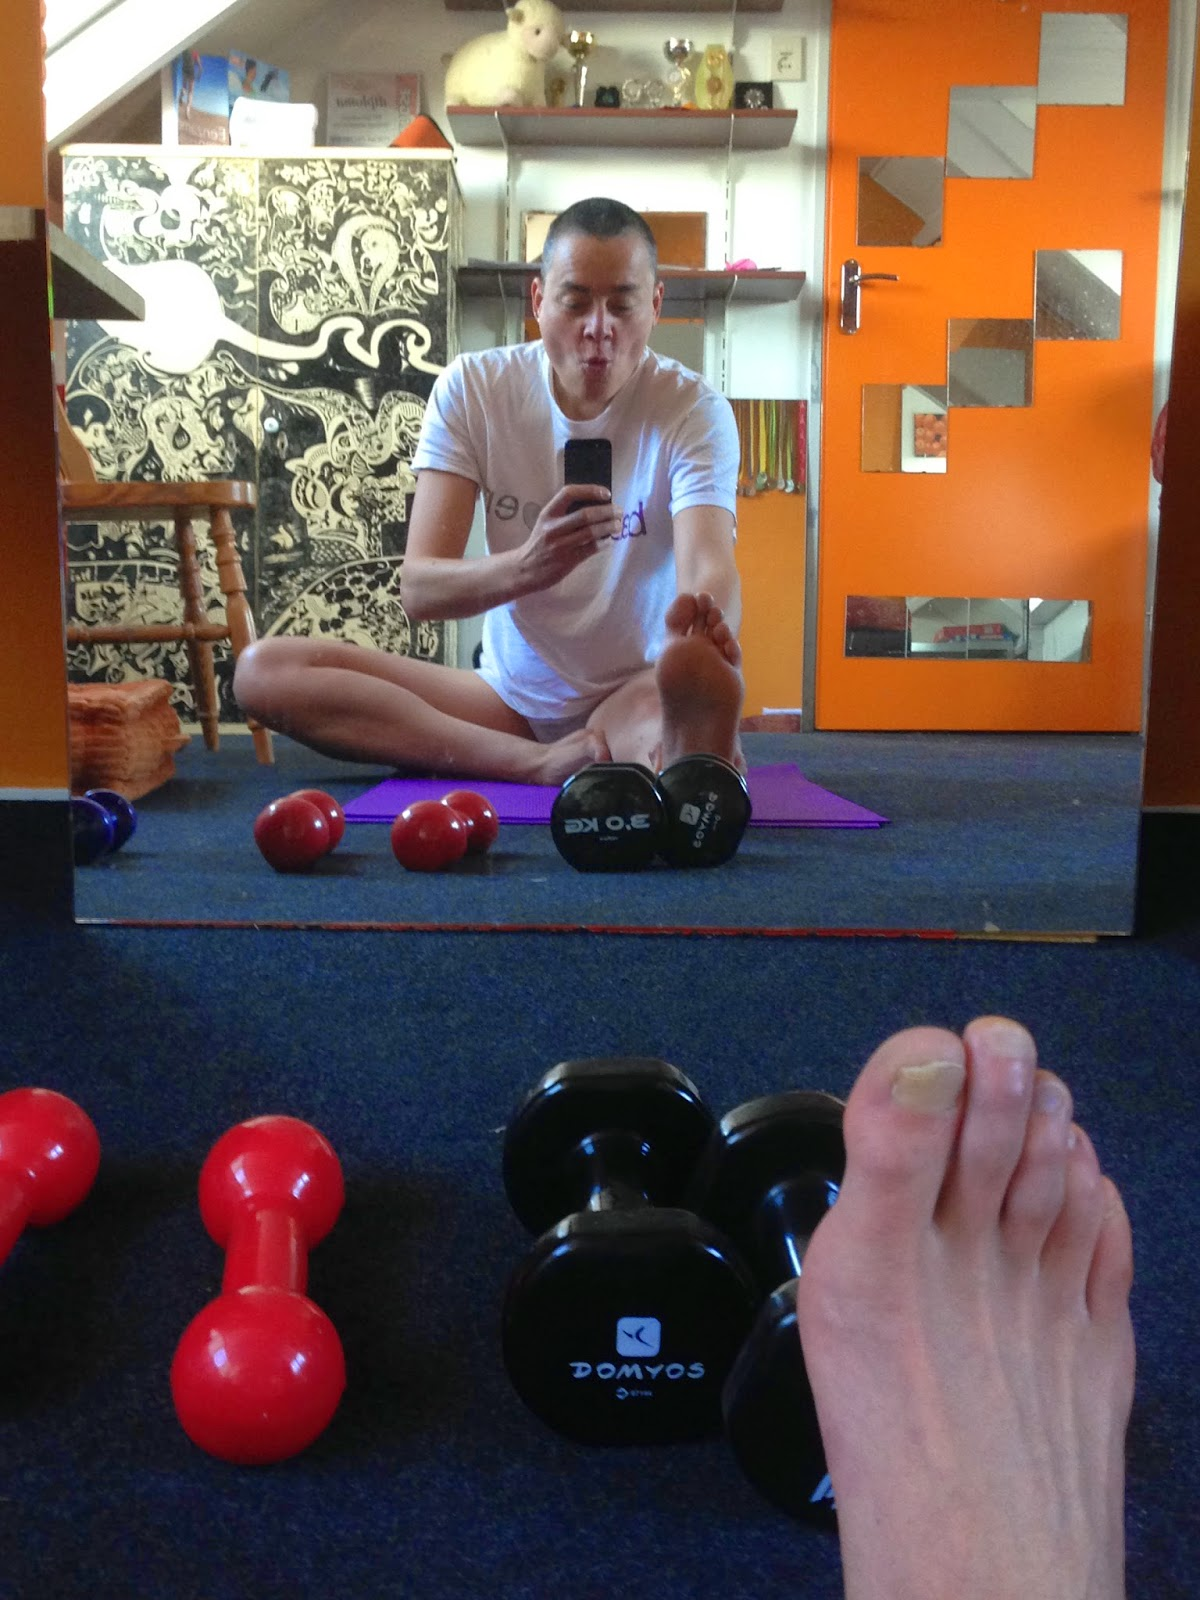 Ds Compact Domyos Occasion What Are My Benefits When I Stop With The Wim Hof Method My Wim